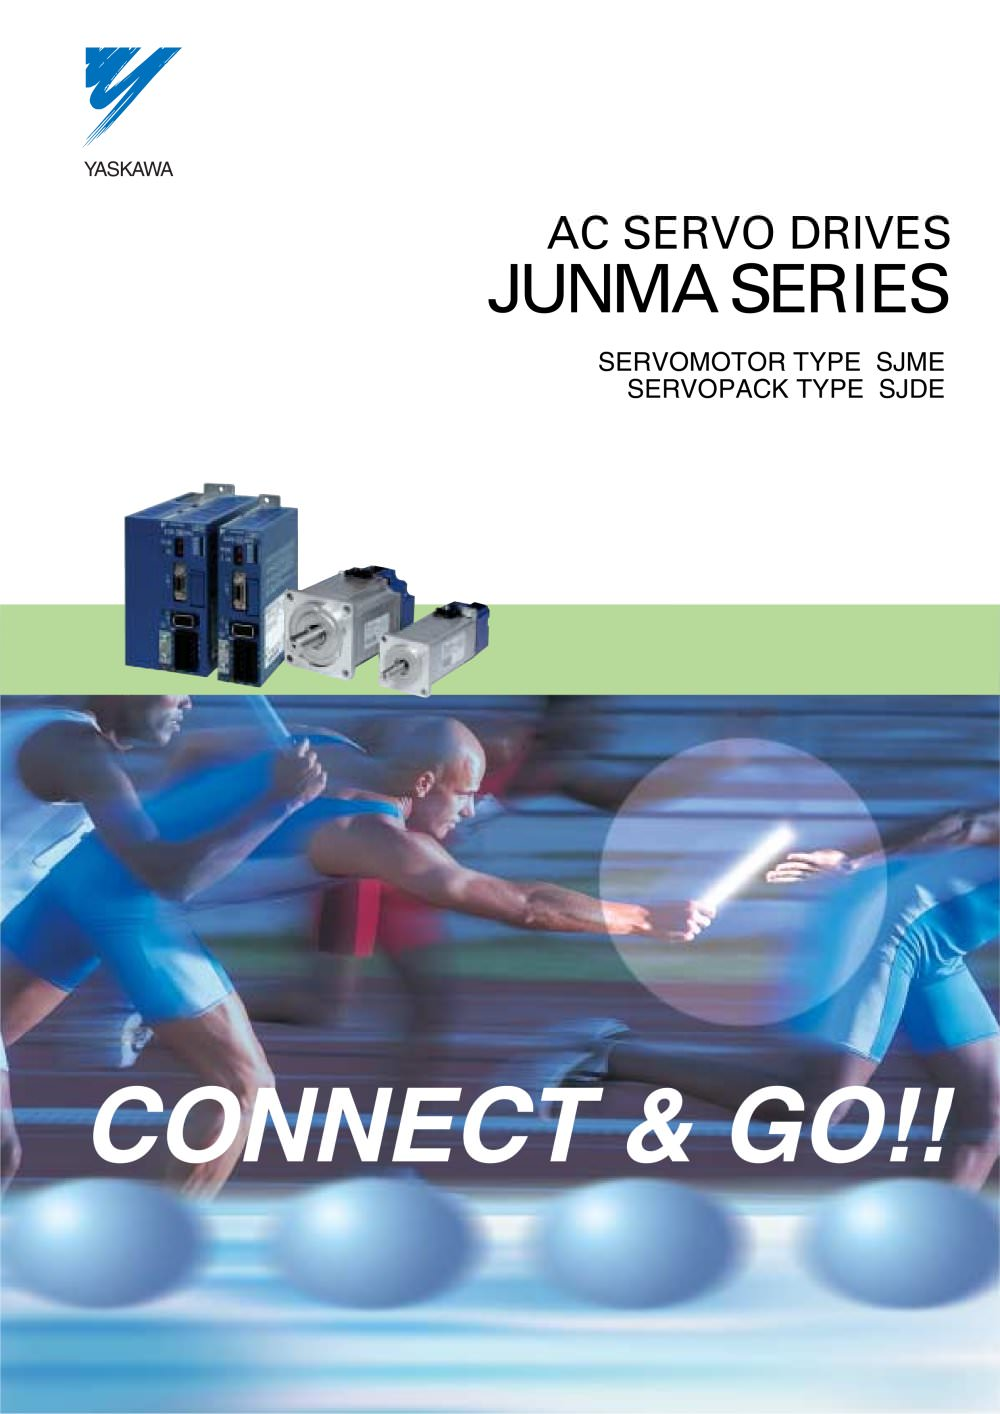 AC SERVO DRIVES JUNMA SERIES - YASKAWA - PDF Catalogue | Technical ...